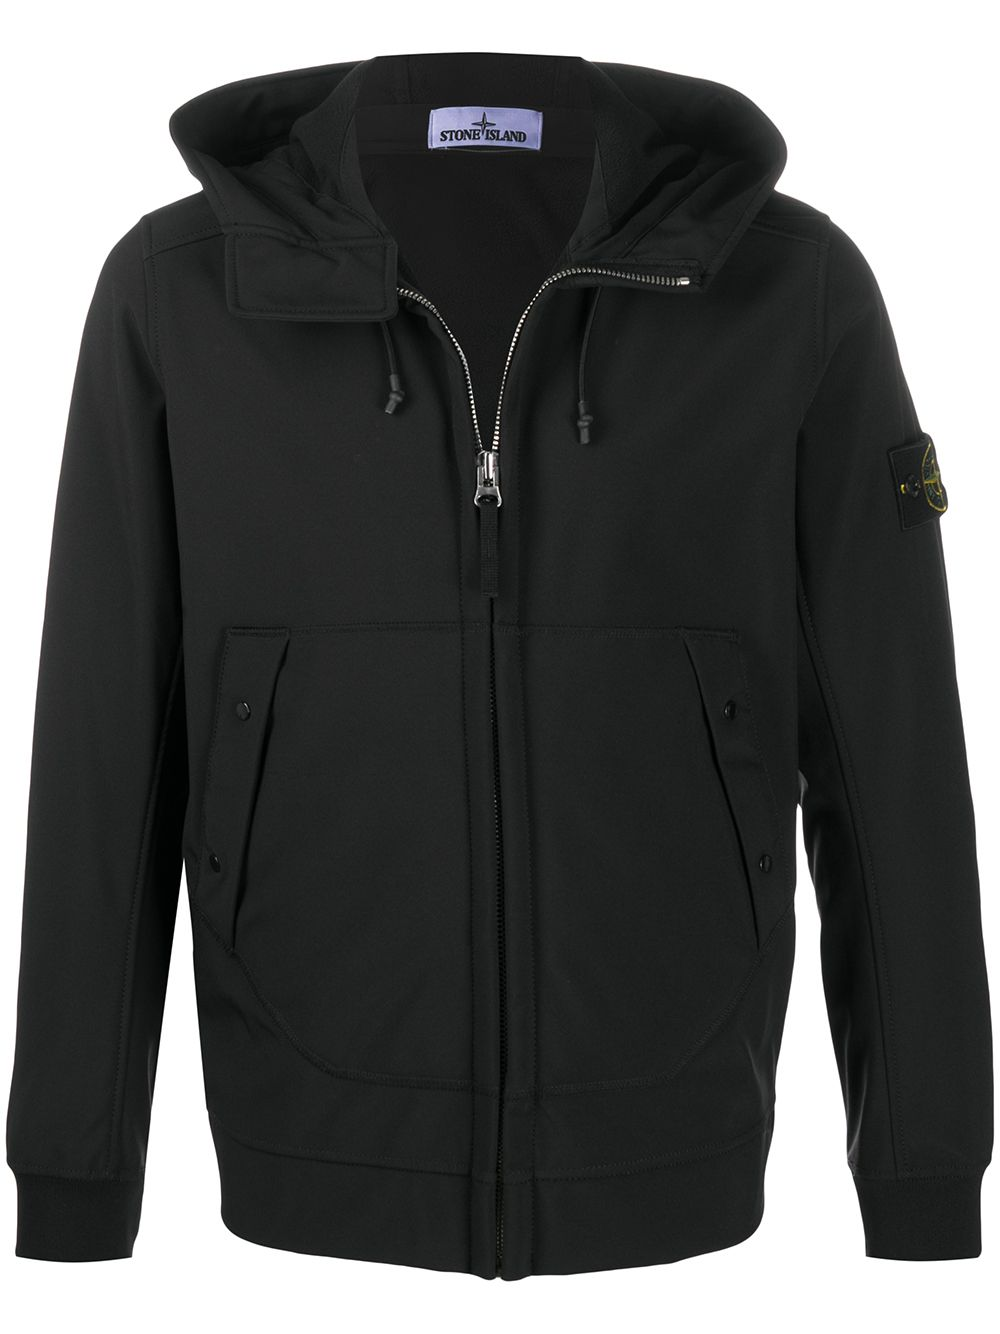 Stone Island compass badge hooded jacket black